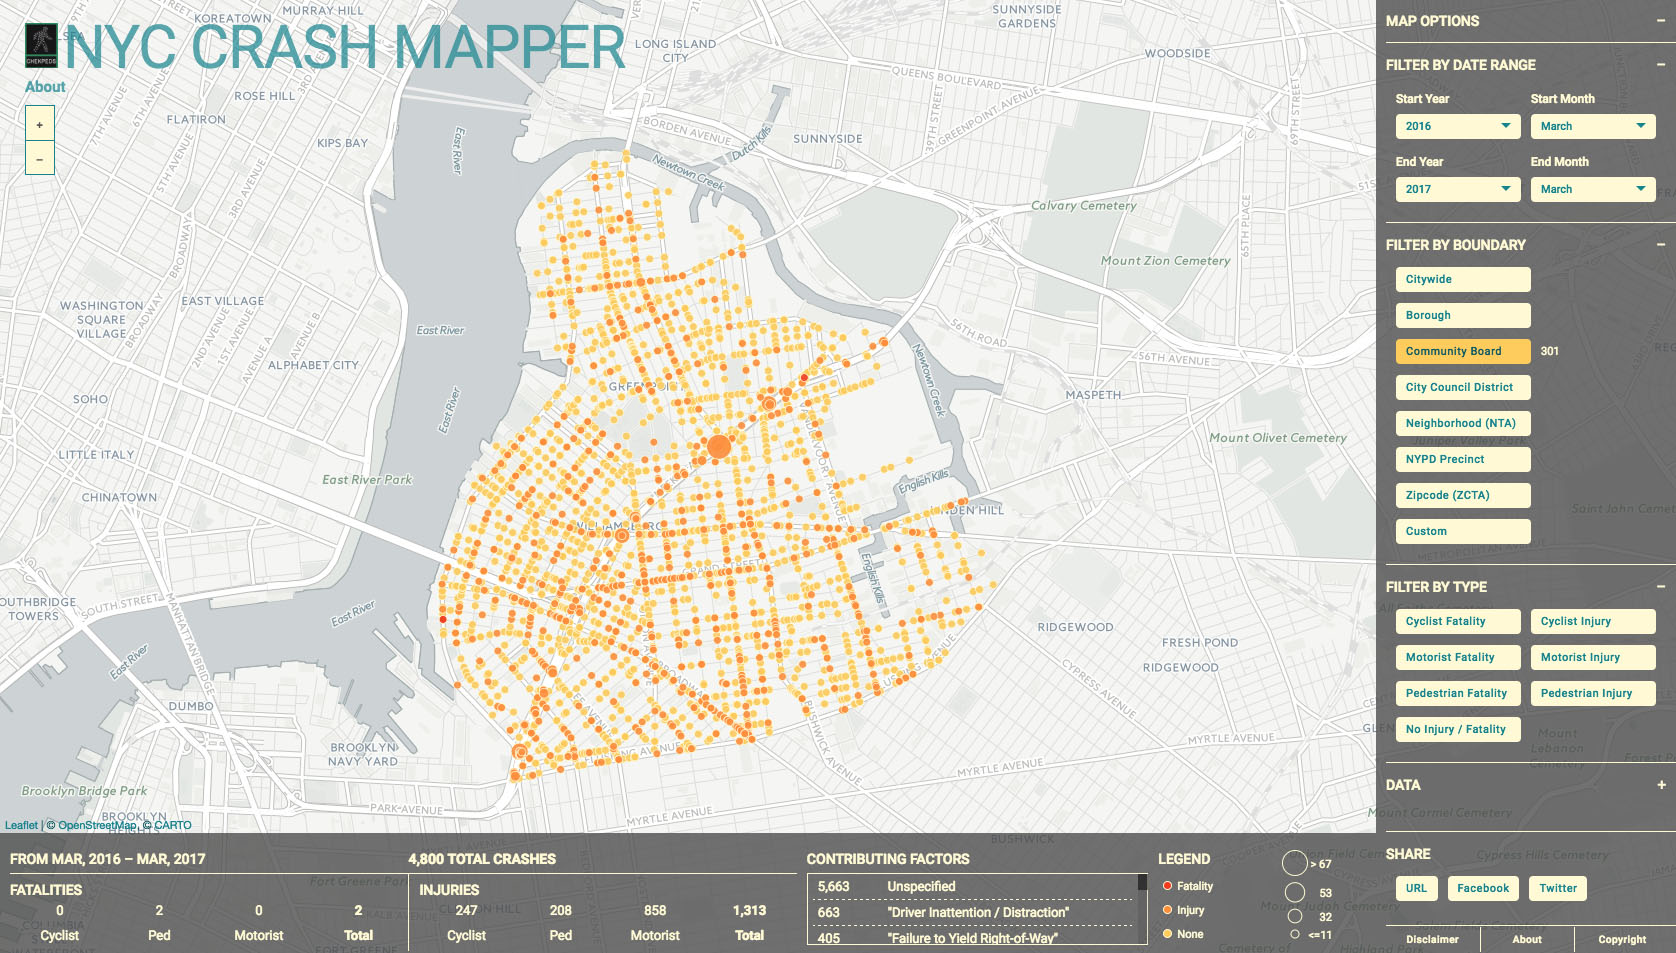 nyc-crash-mapper04.jpg